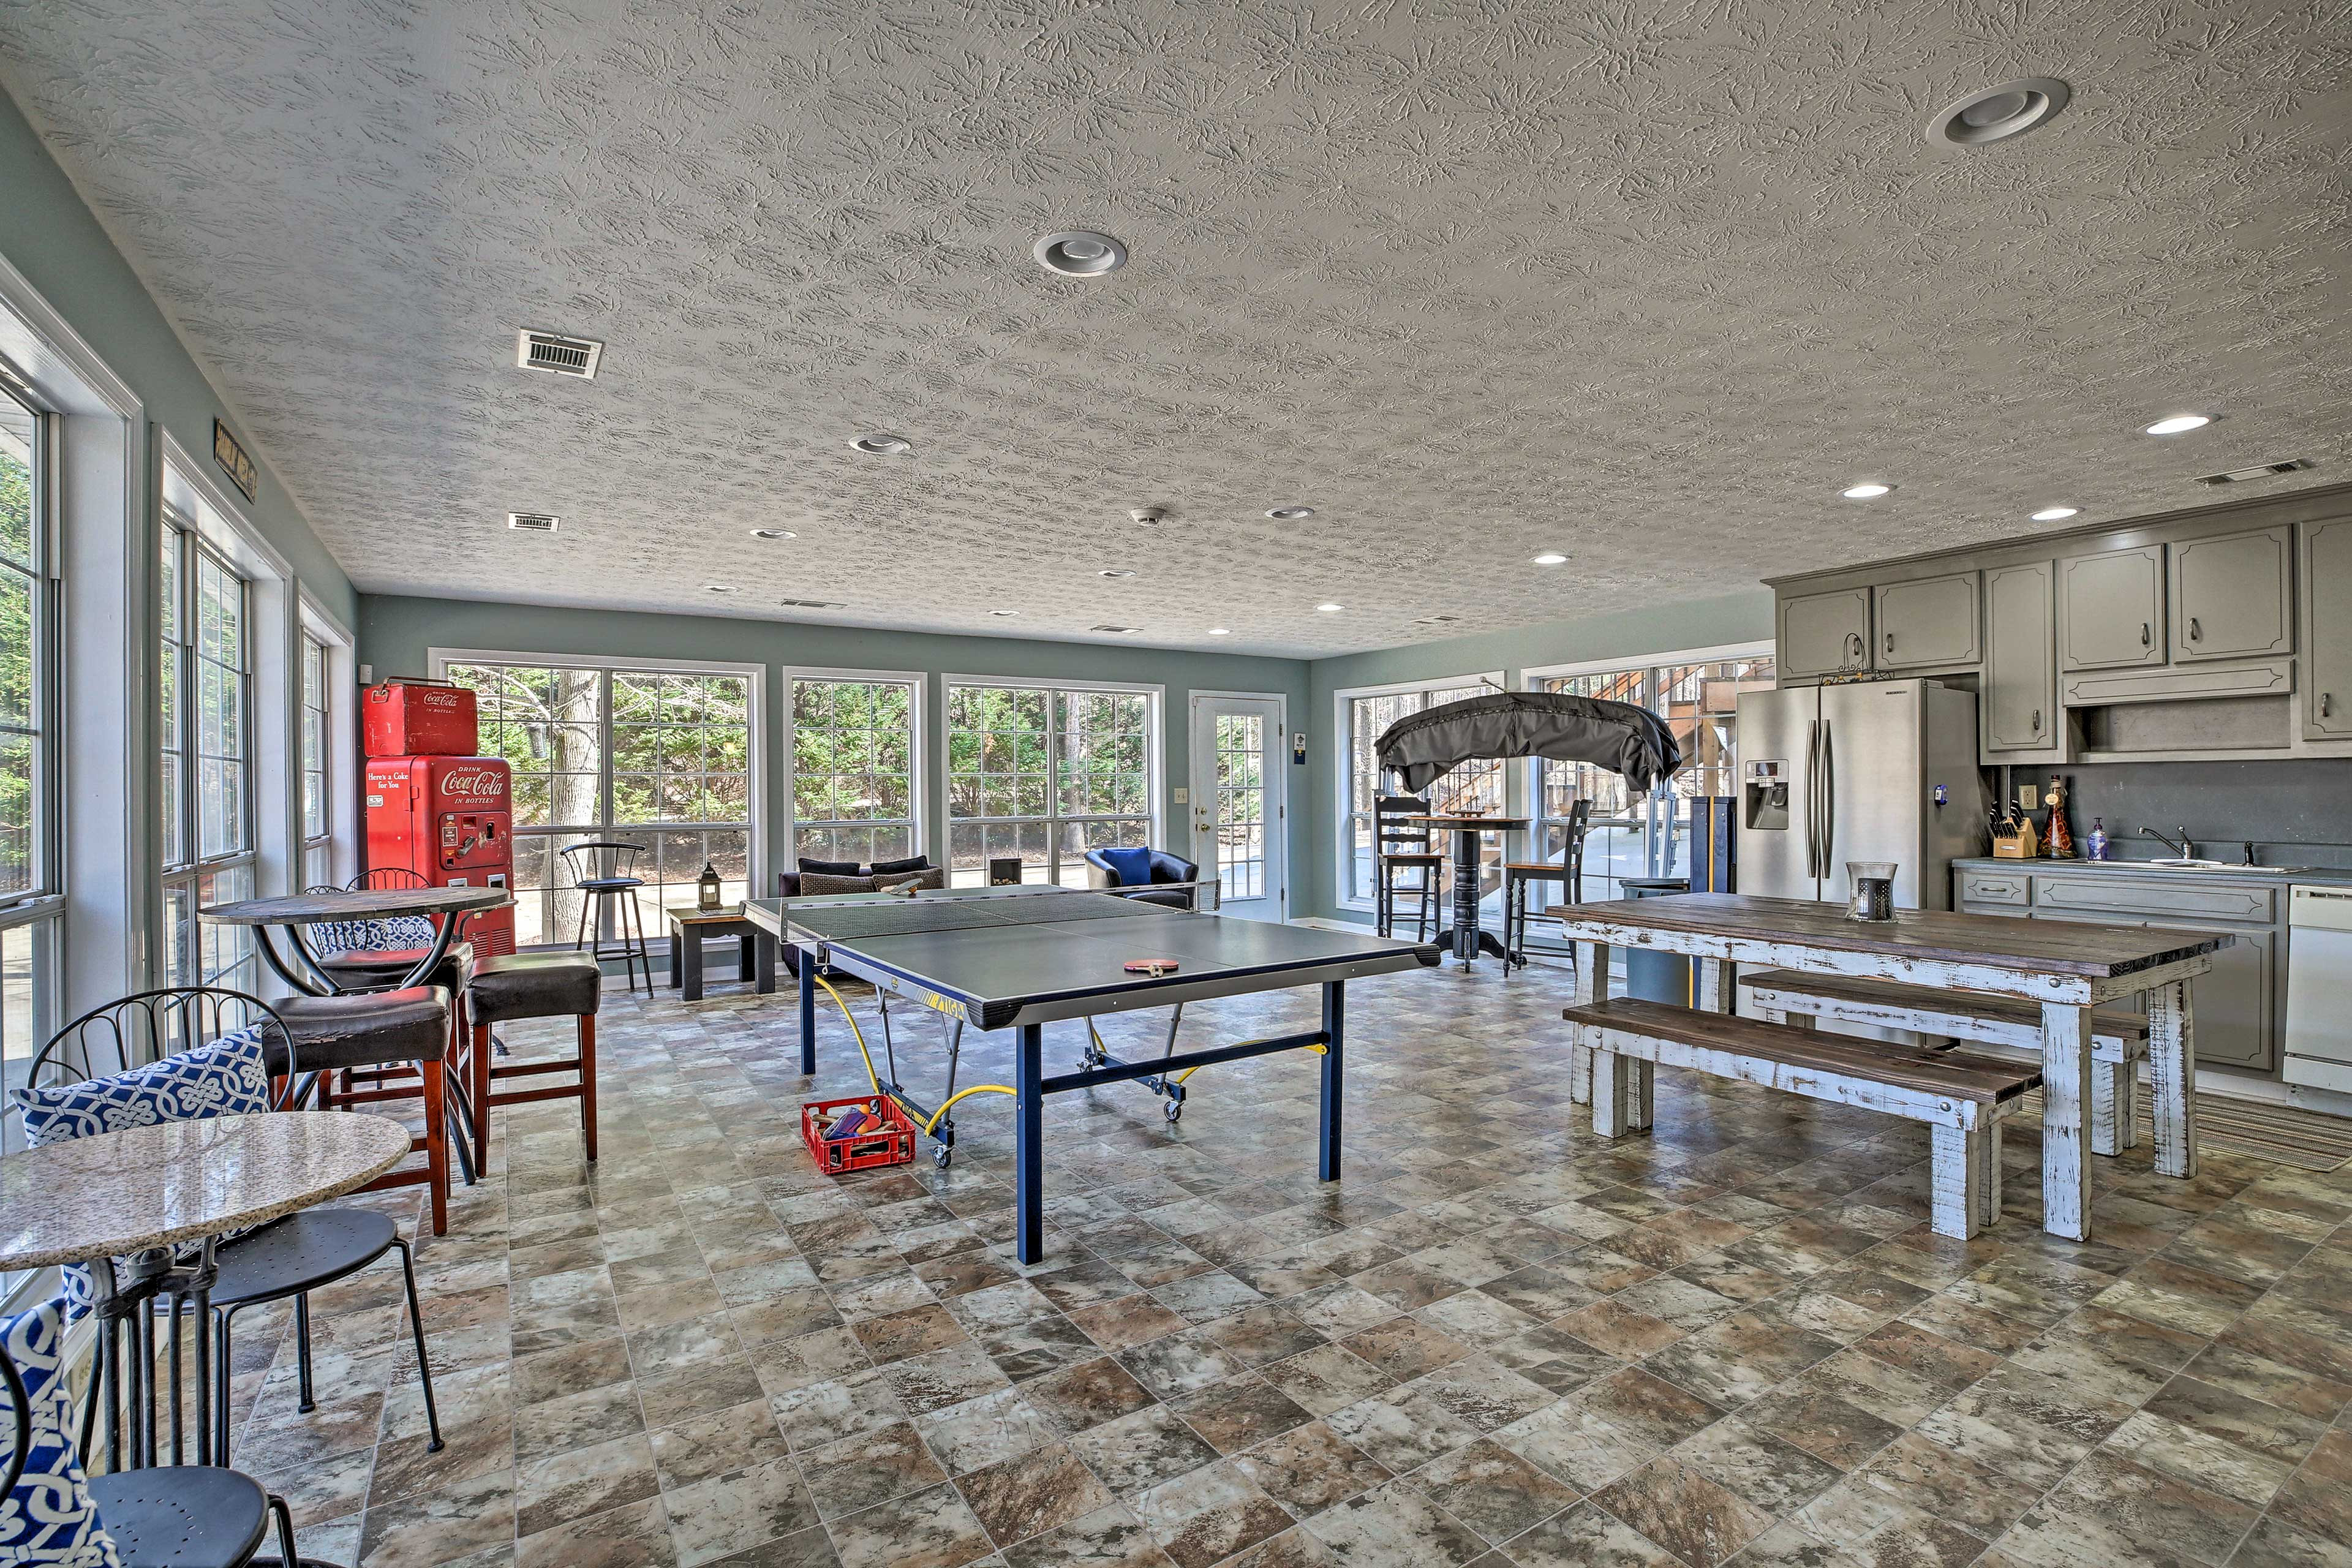 Challenge your loved one to a game of ping pong.